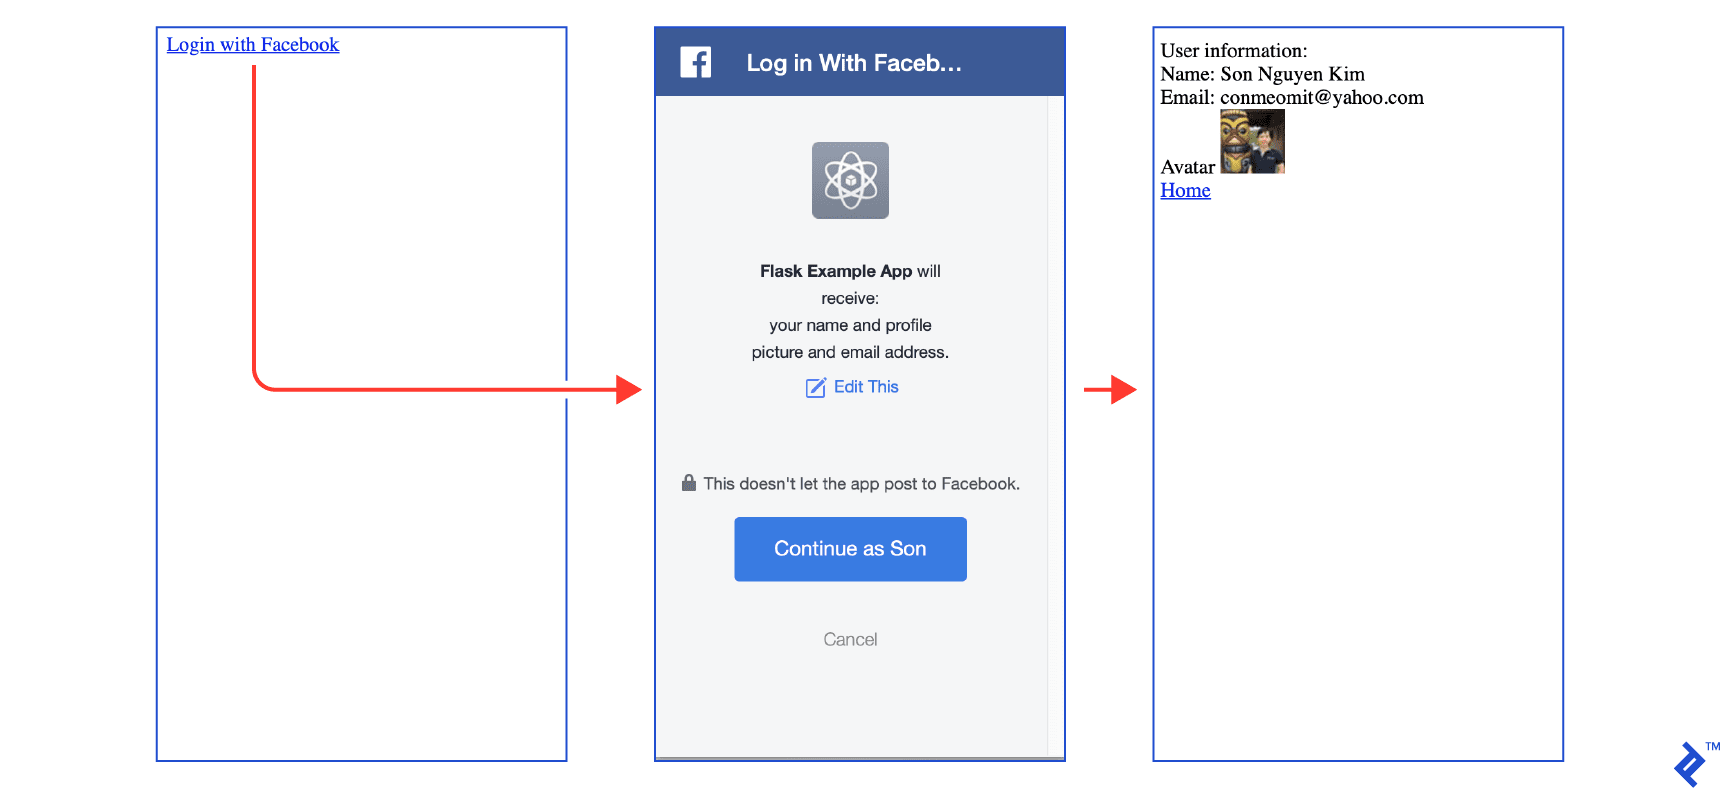 Login with Facebook process